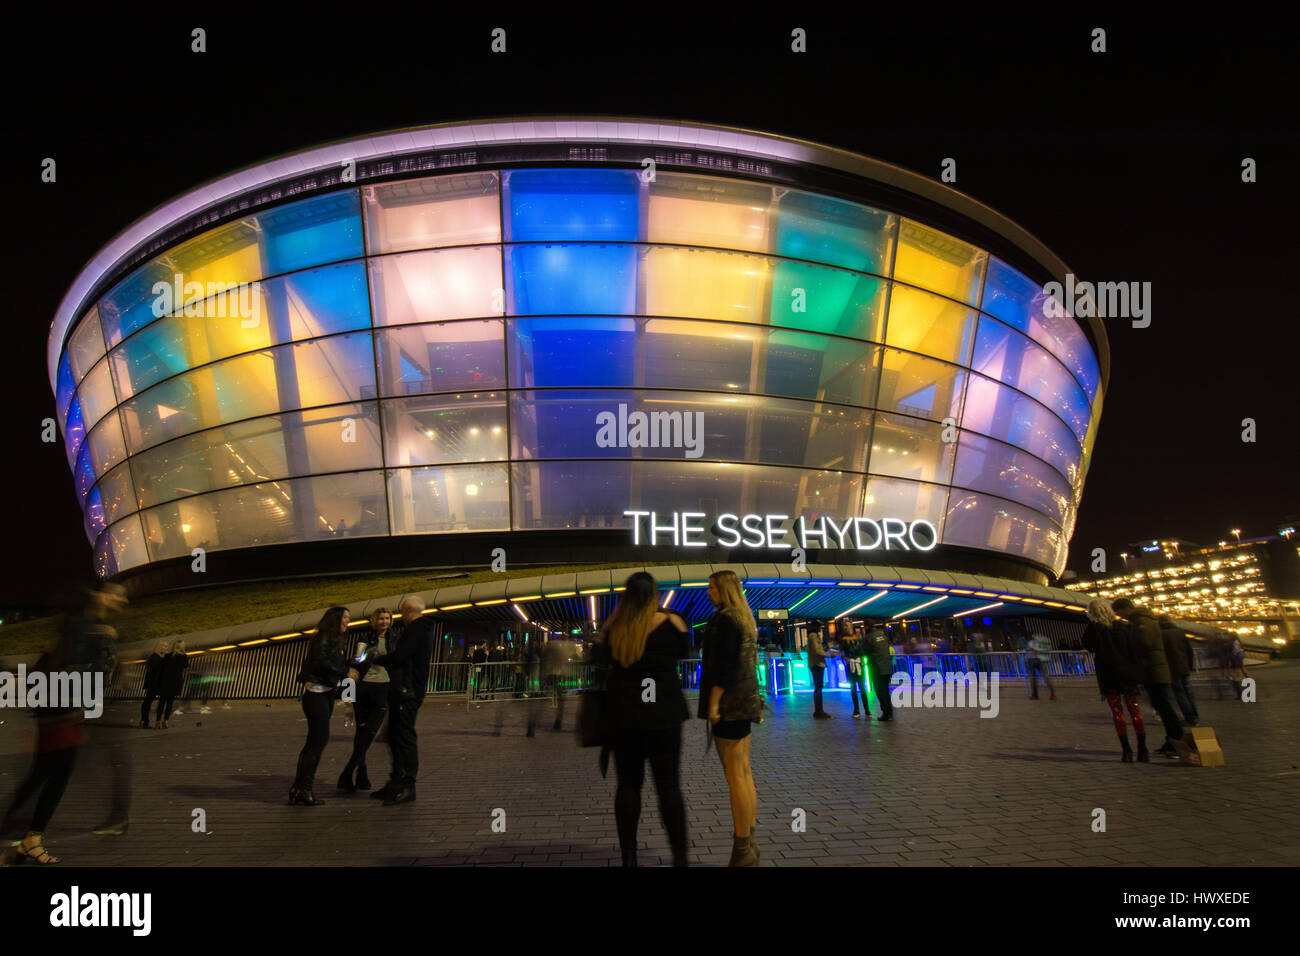 The SSE Hydro at the Scottish Event Campus - SEC - Glasgow, Scotland, UK at night - people standing outside - Stock Image